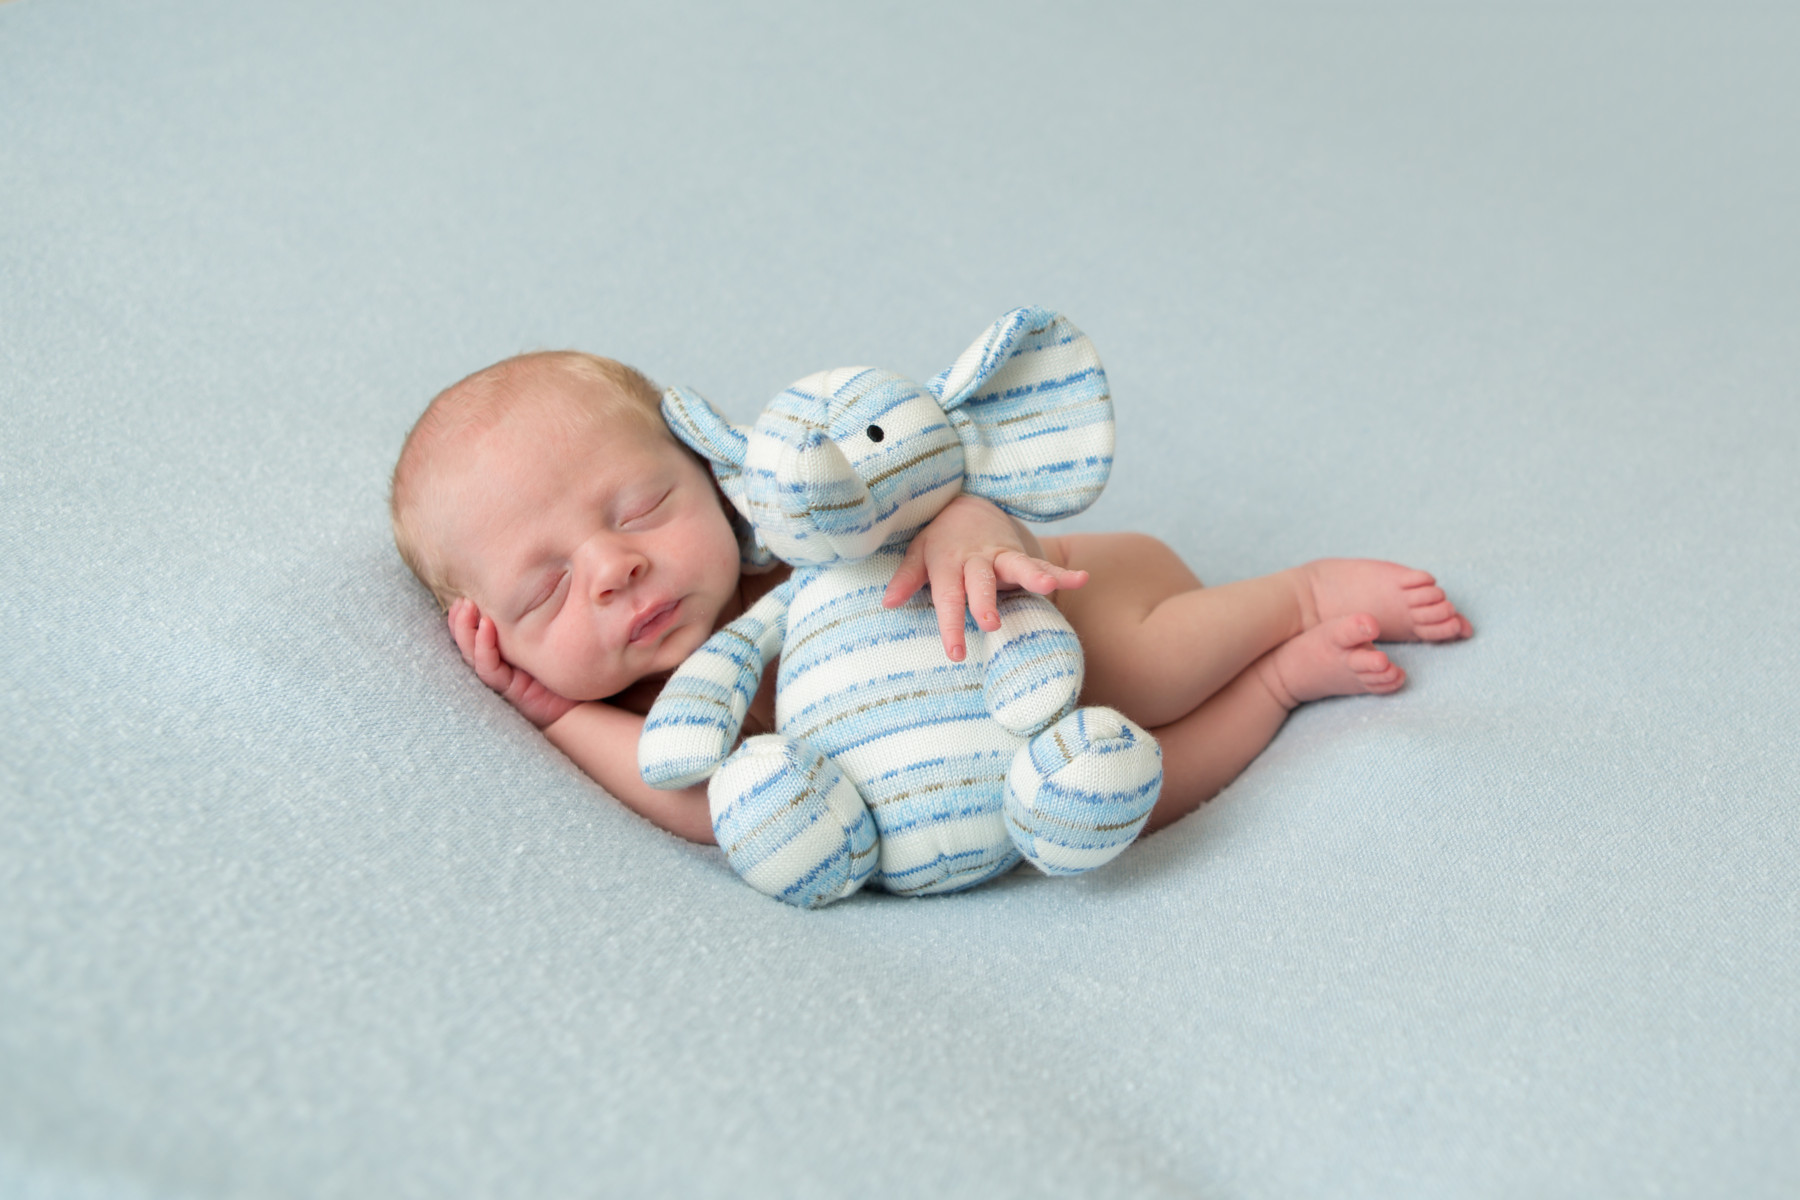 leeds newborn photographer, jan sweeney photography